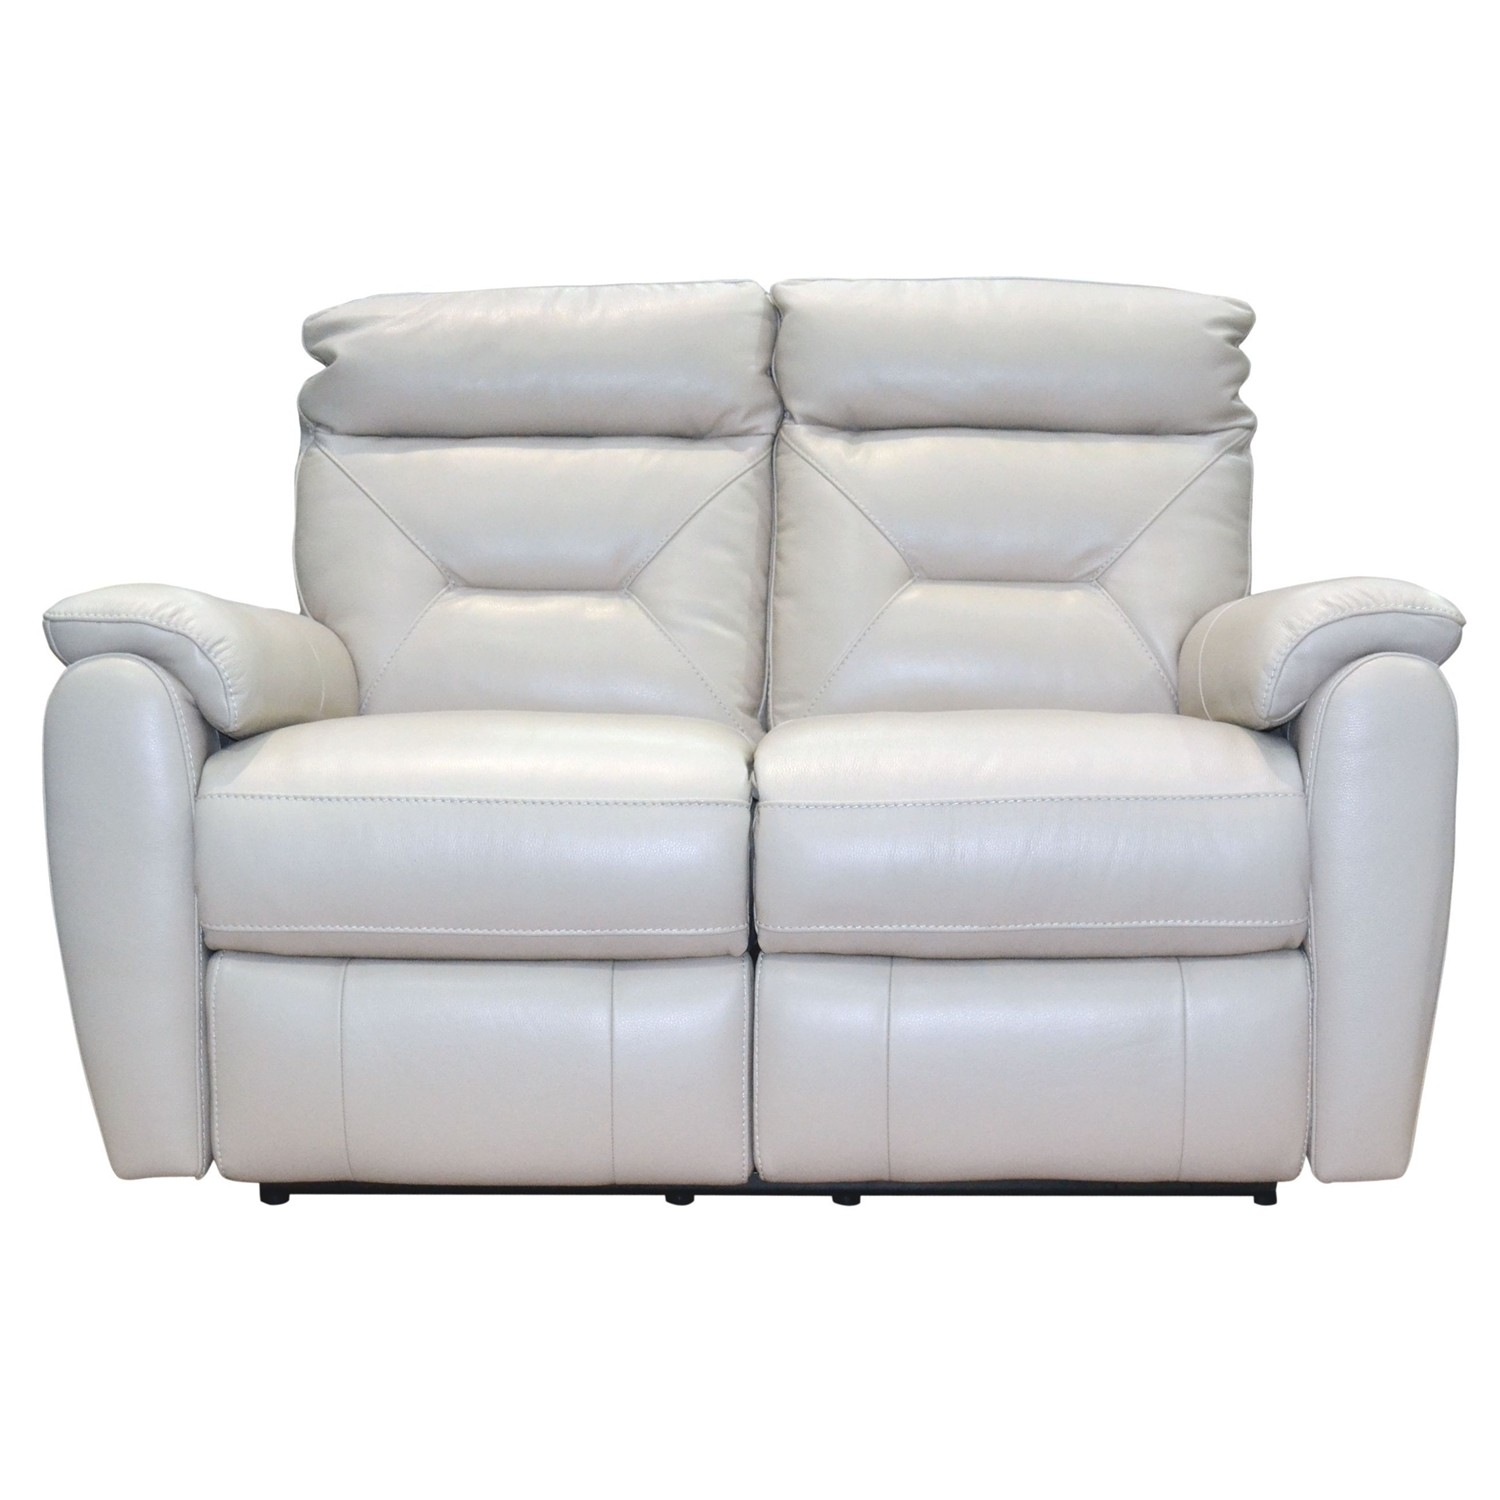 Colorado Two Seater Manual Recliner Leather Sofa